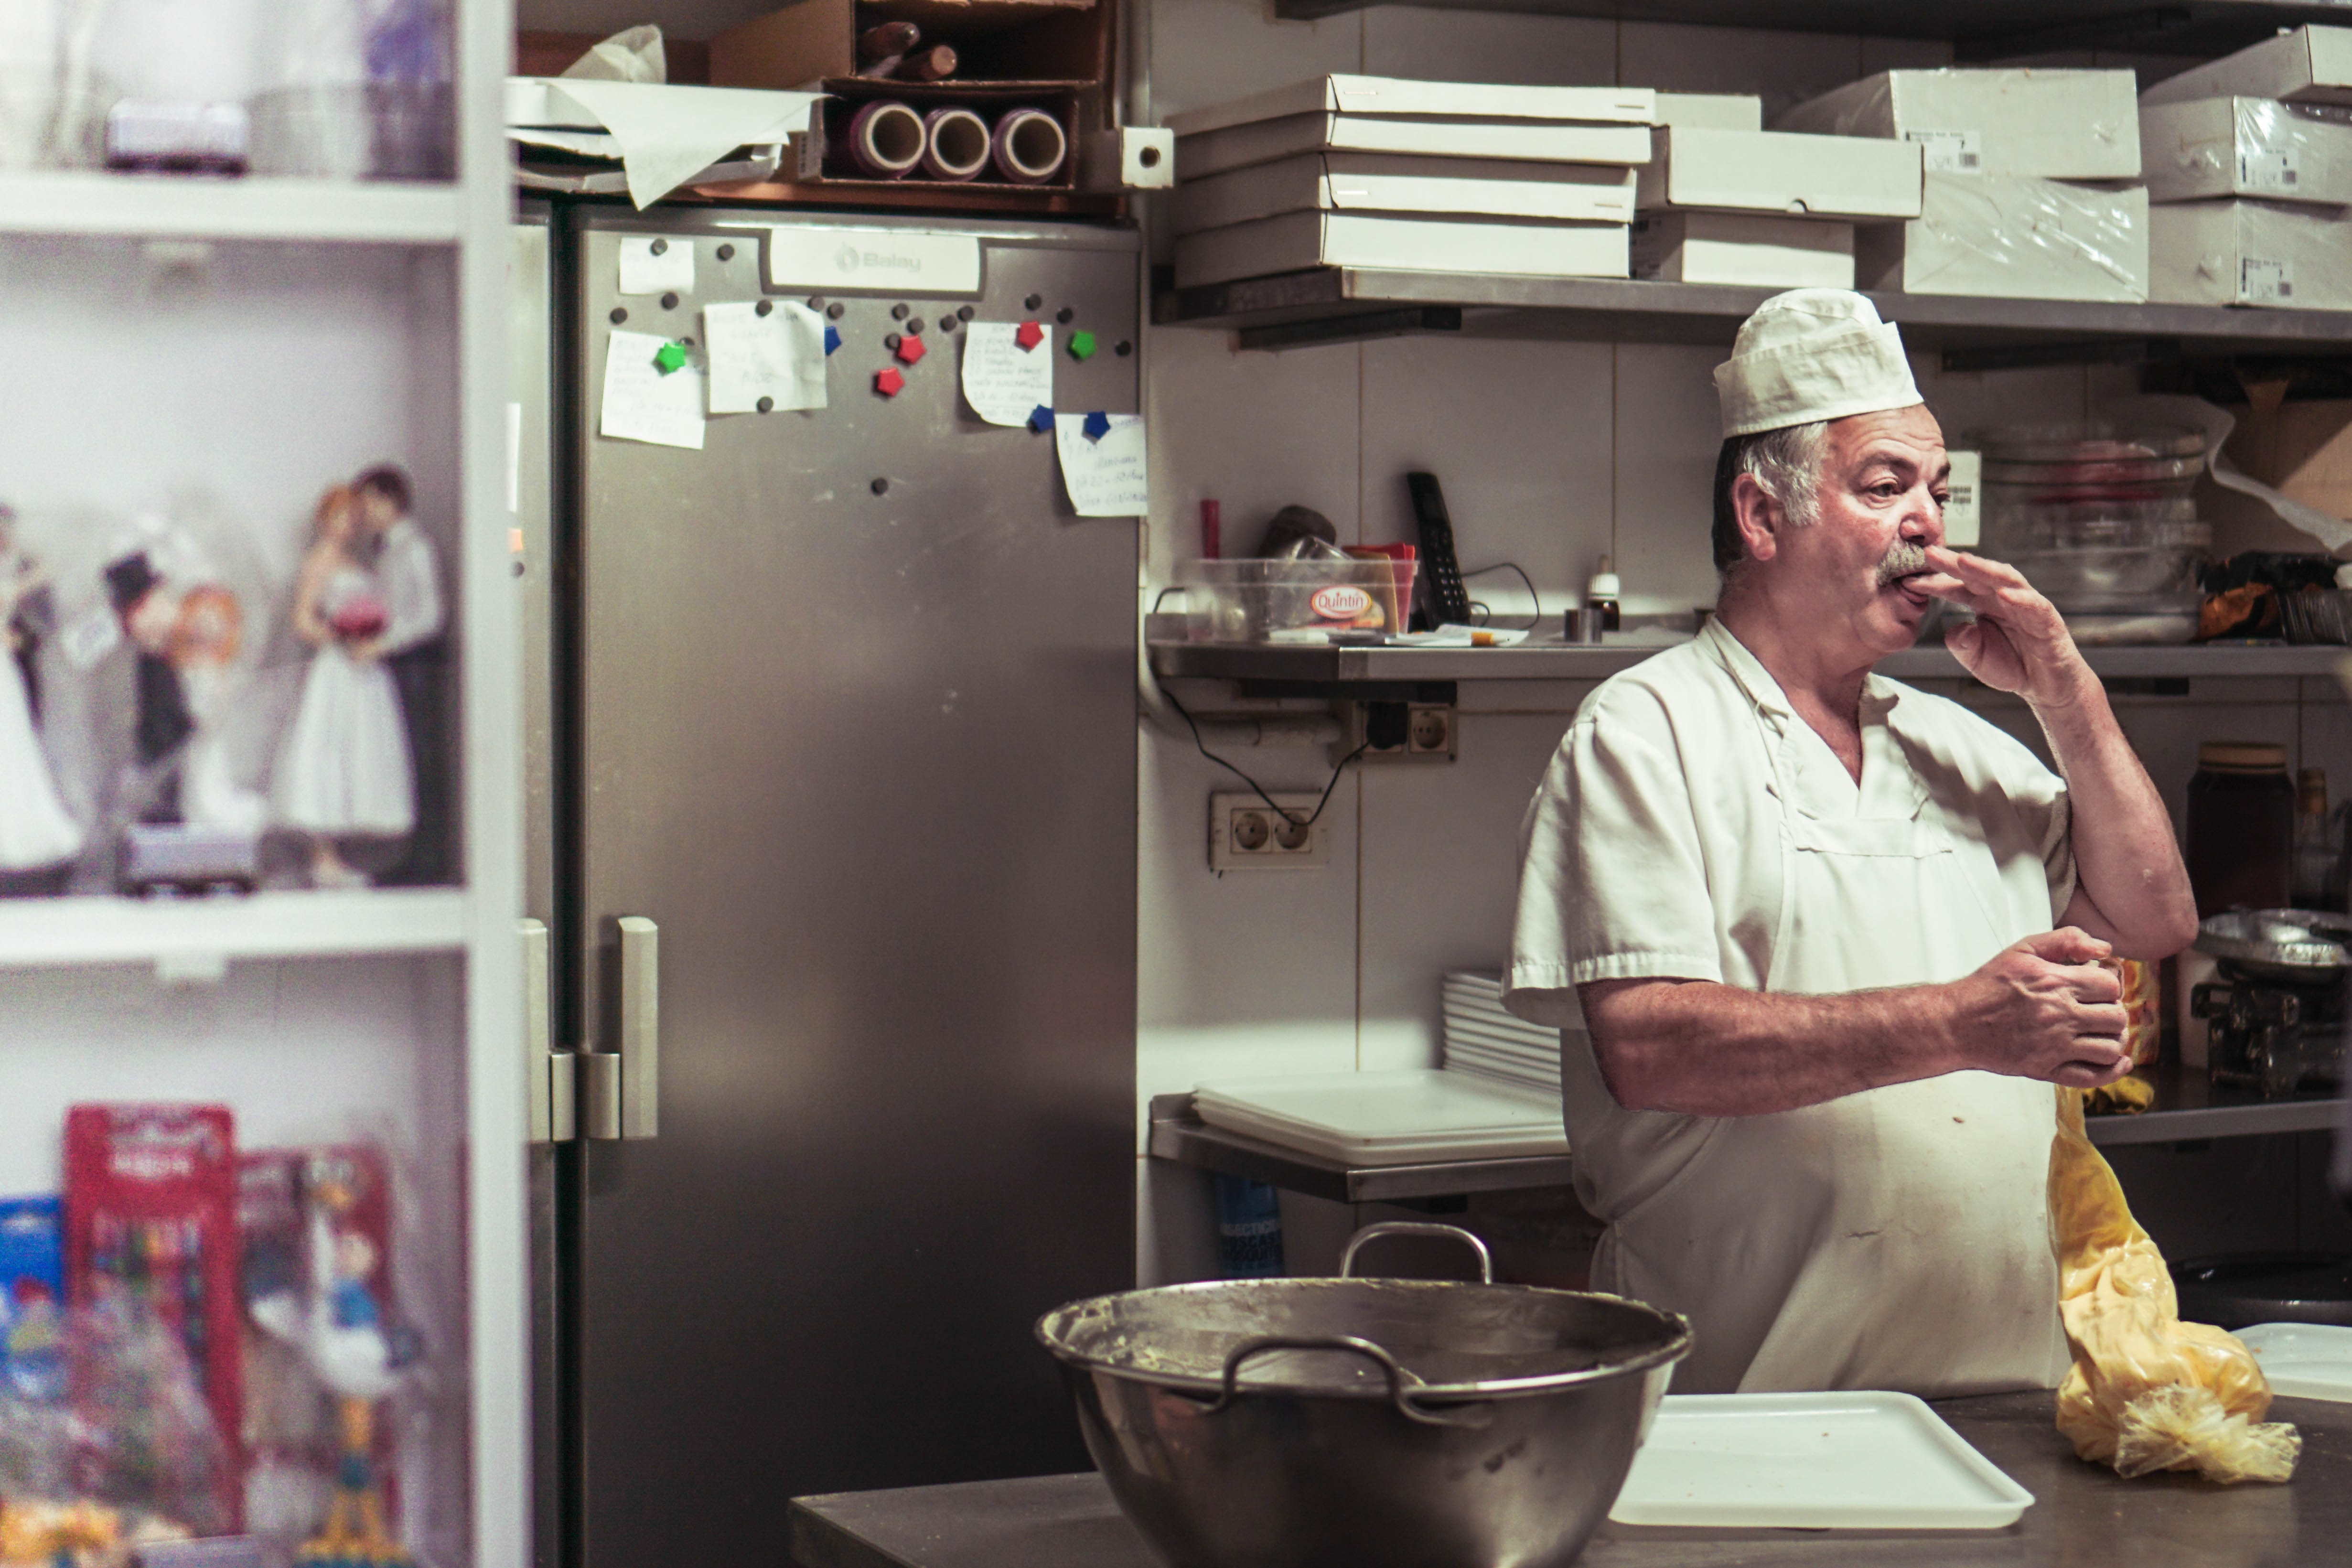 gray-haired chef with mustache in a bakery kitchen